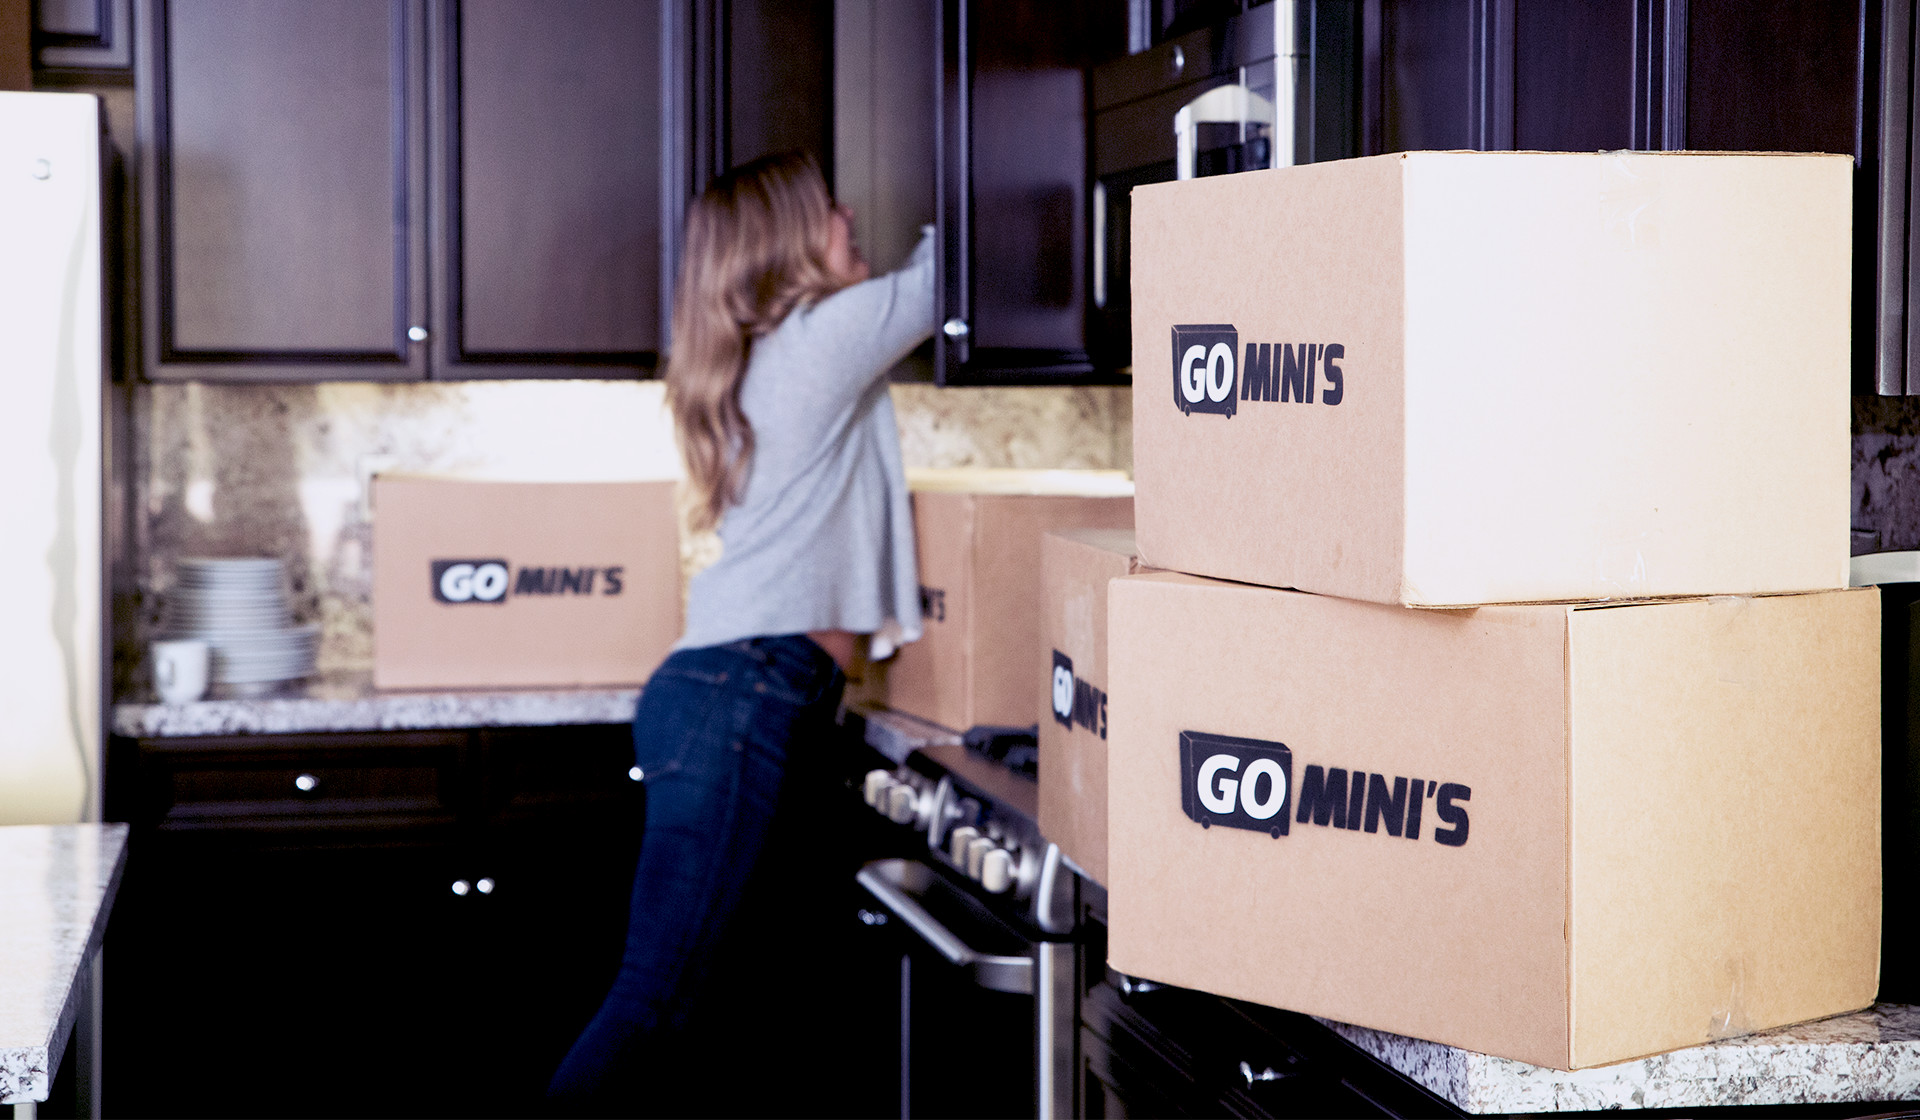 A woman reaches into a kitchen cupboard while cardboard Go Mini's moving boxes are on the counter